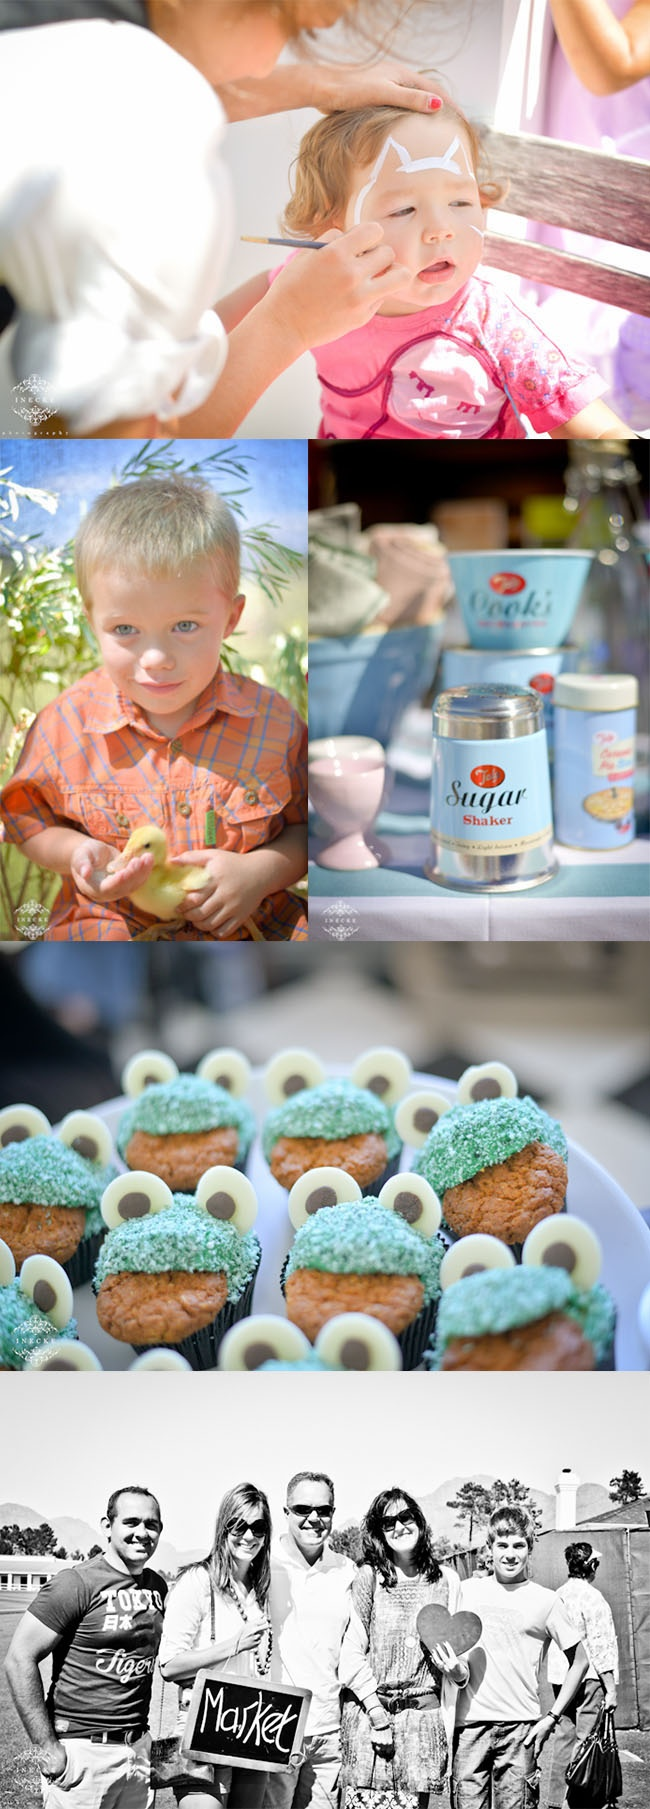 Face paint and farm animals for children to enjoy. Of course something for the sweet tooth too. @valdevieestate #market